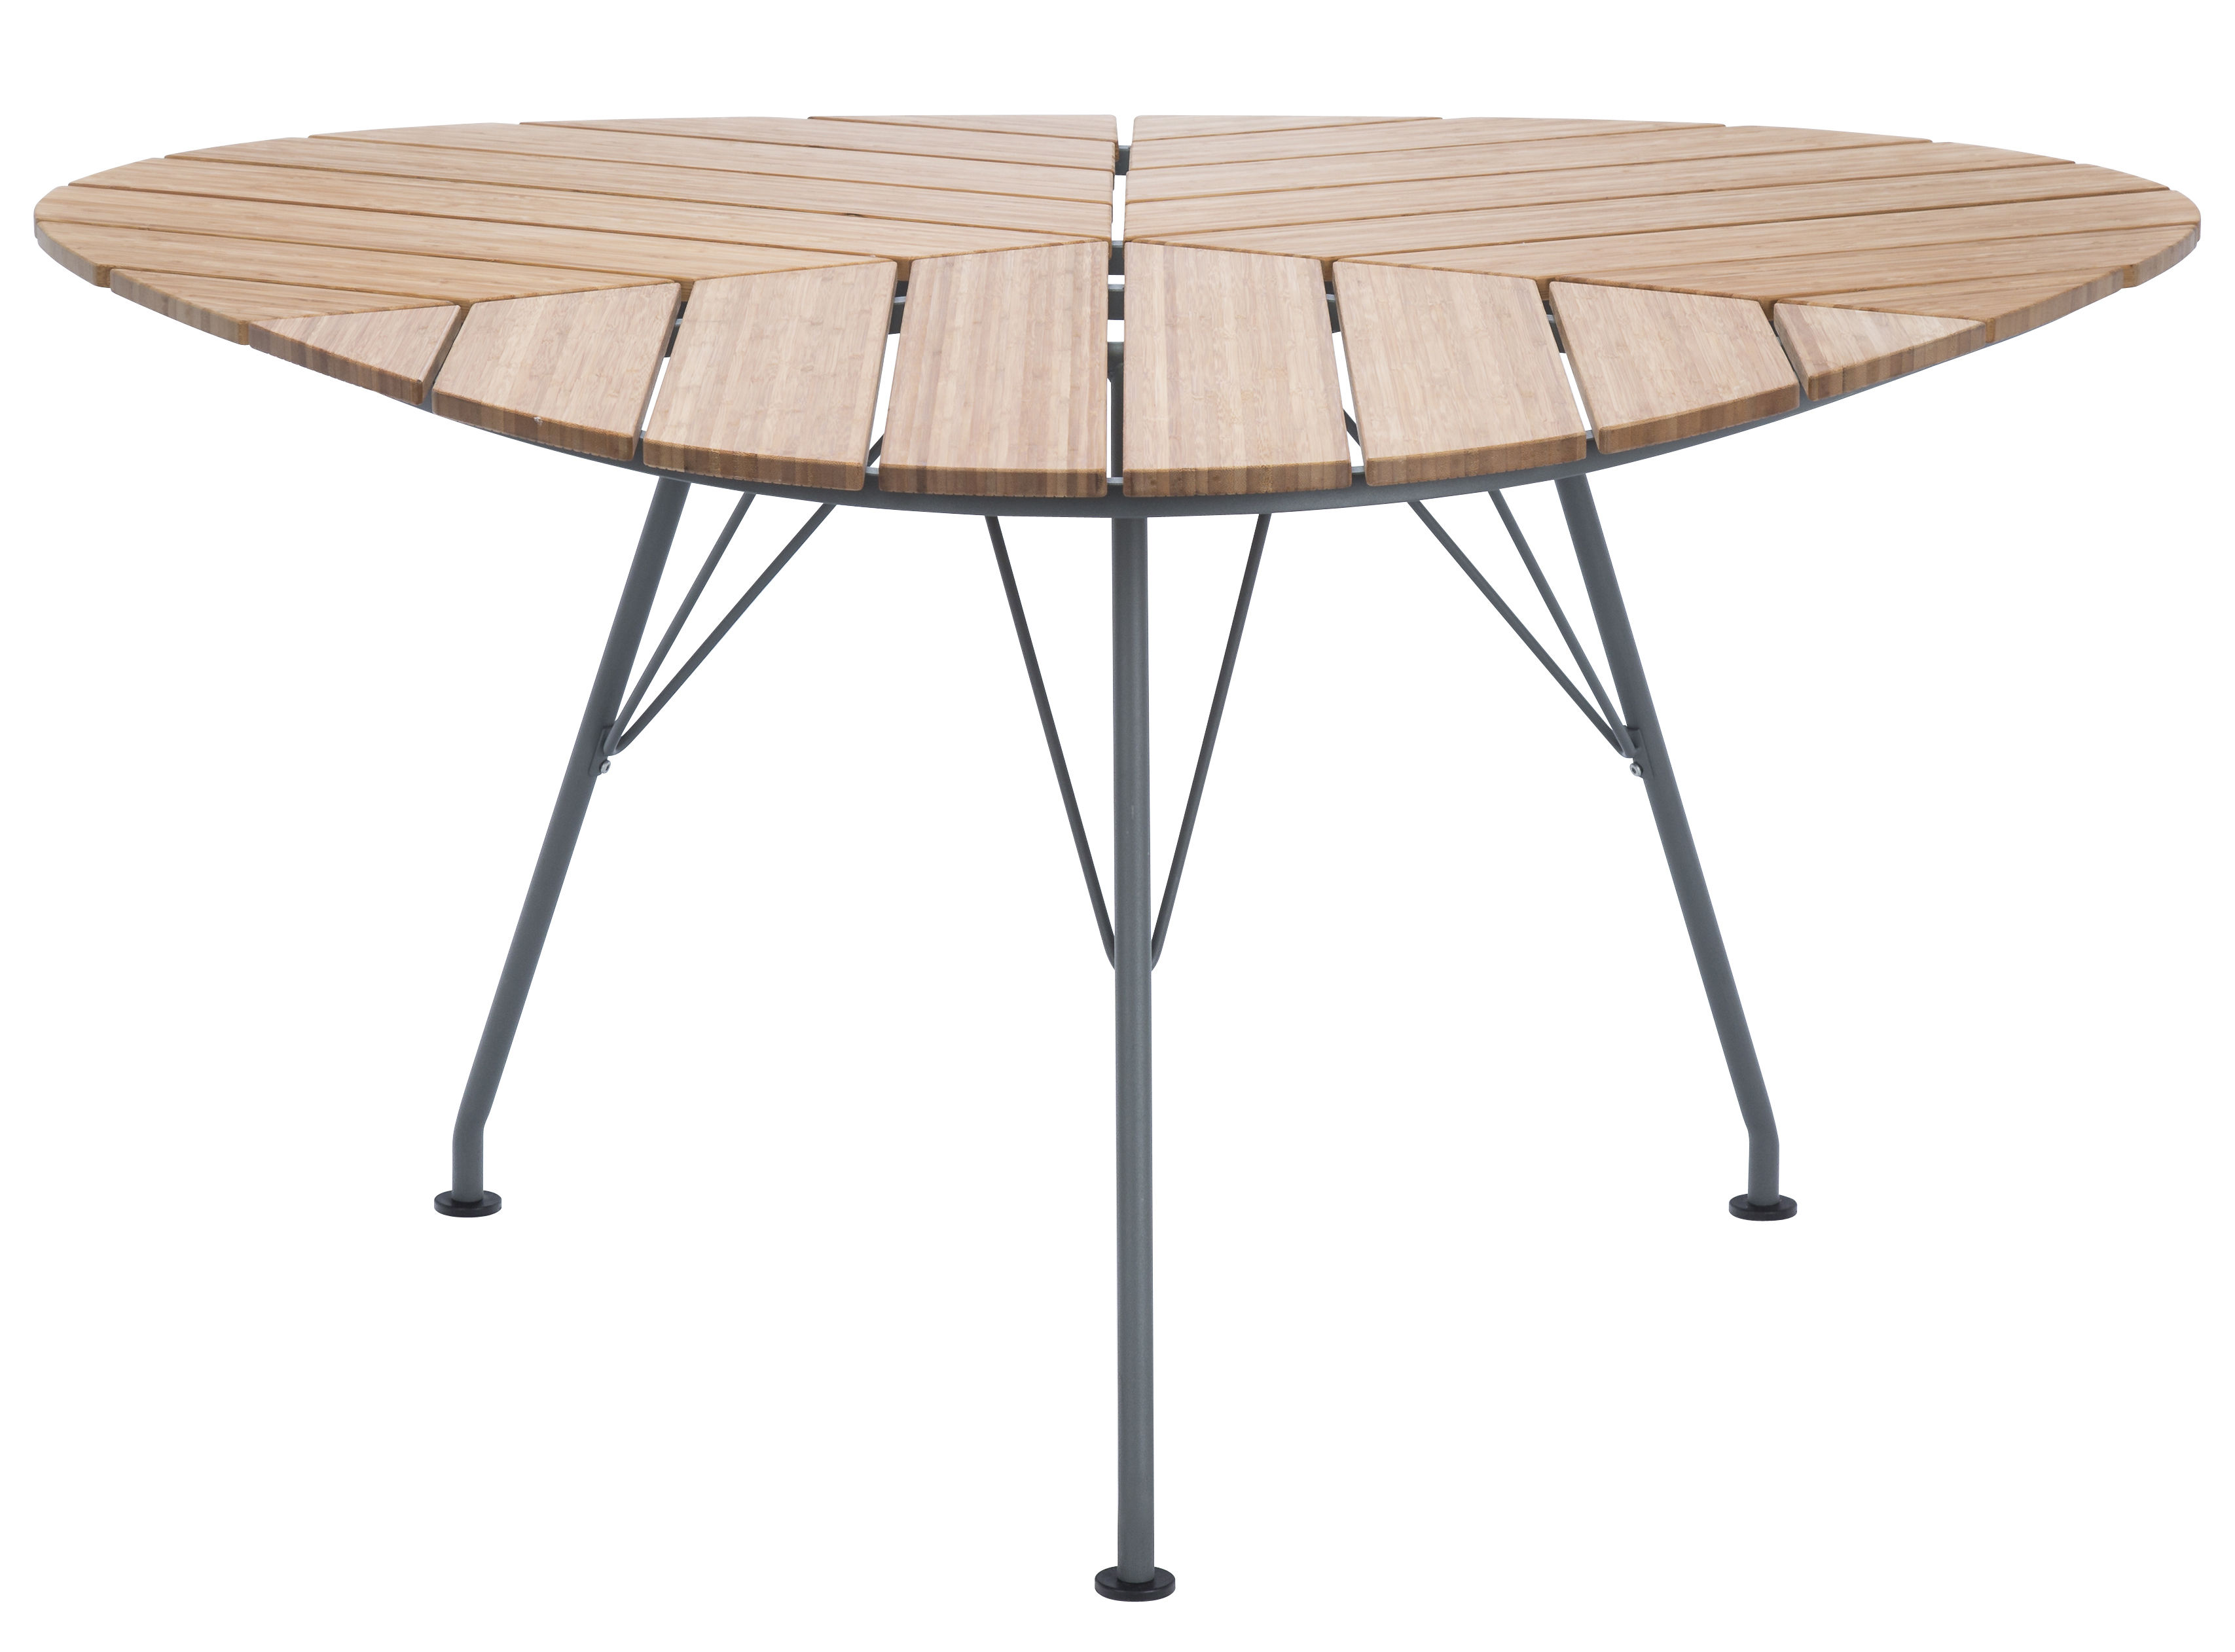 Outdoor - Garden Tables - Leaf Round table - Triangular - 146 x 146 x 146 cm by Houe - Bamboo / Grey feet - Bamboo, Epoxy lacquered metal